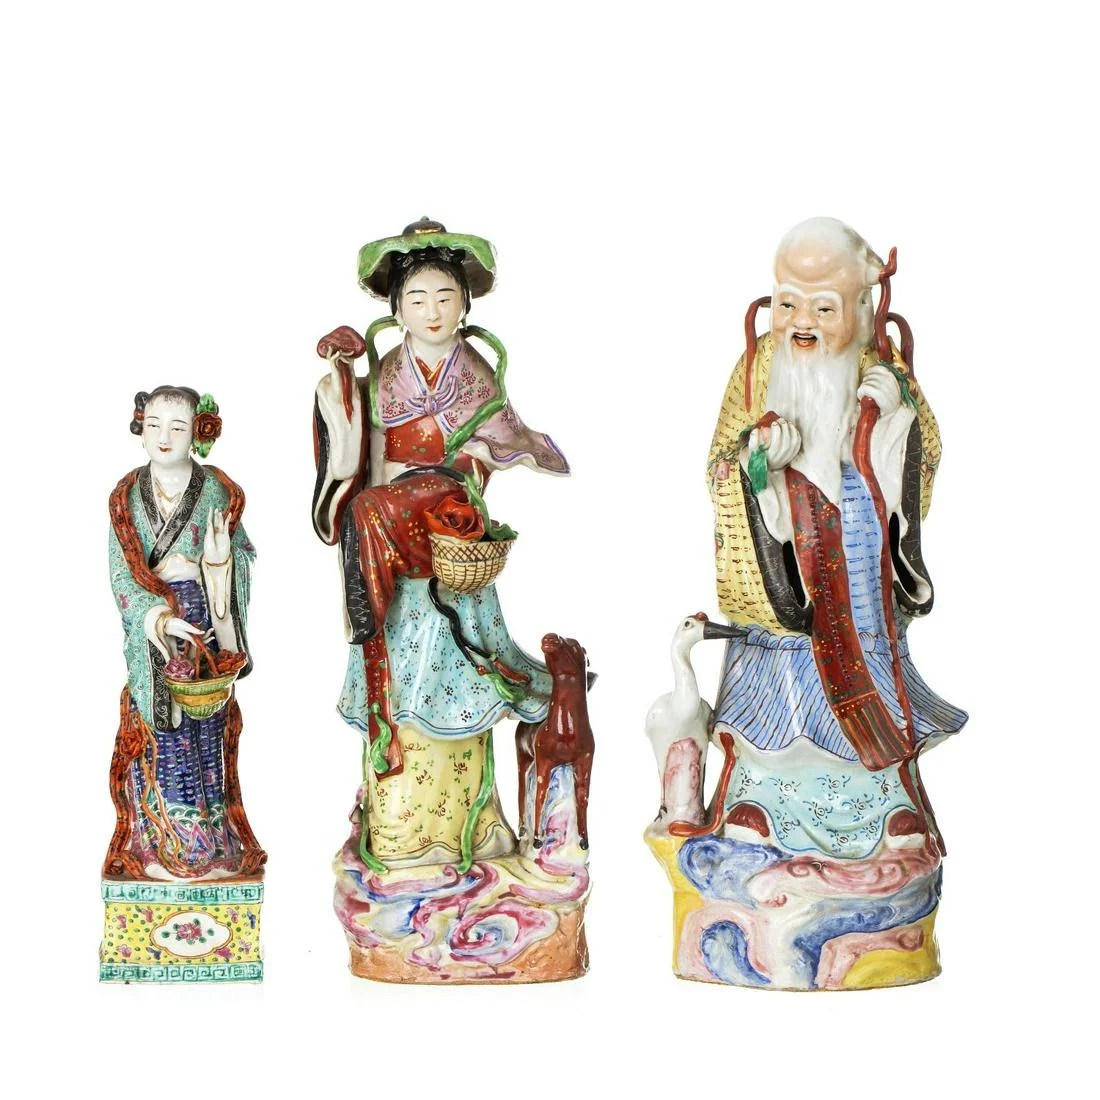 Three deities in Chinese porcelain